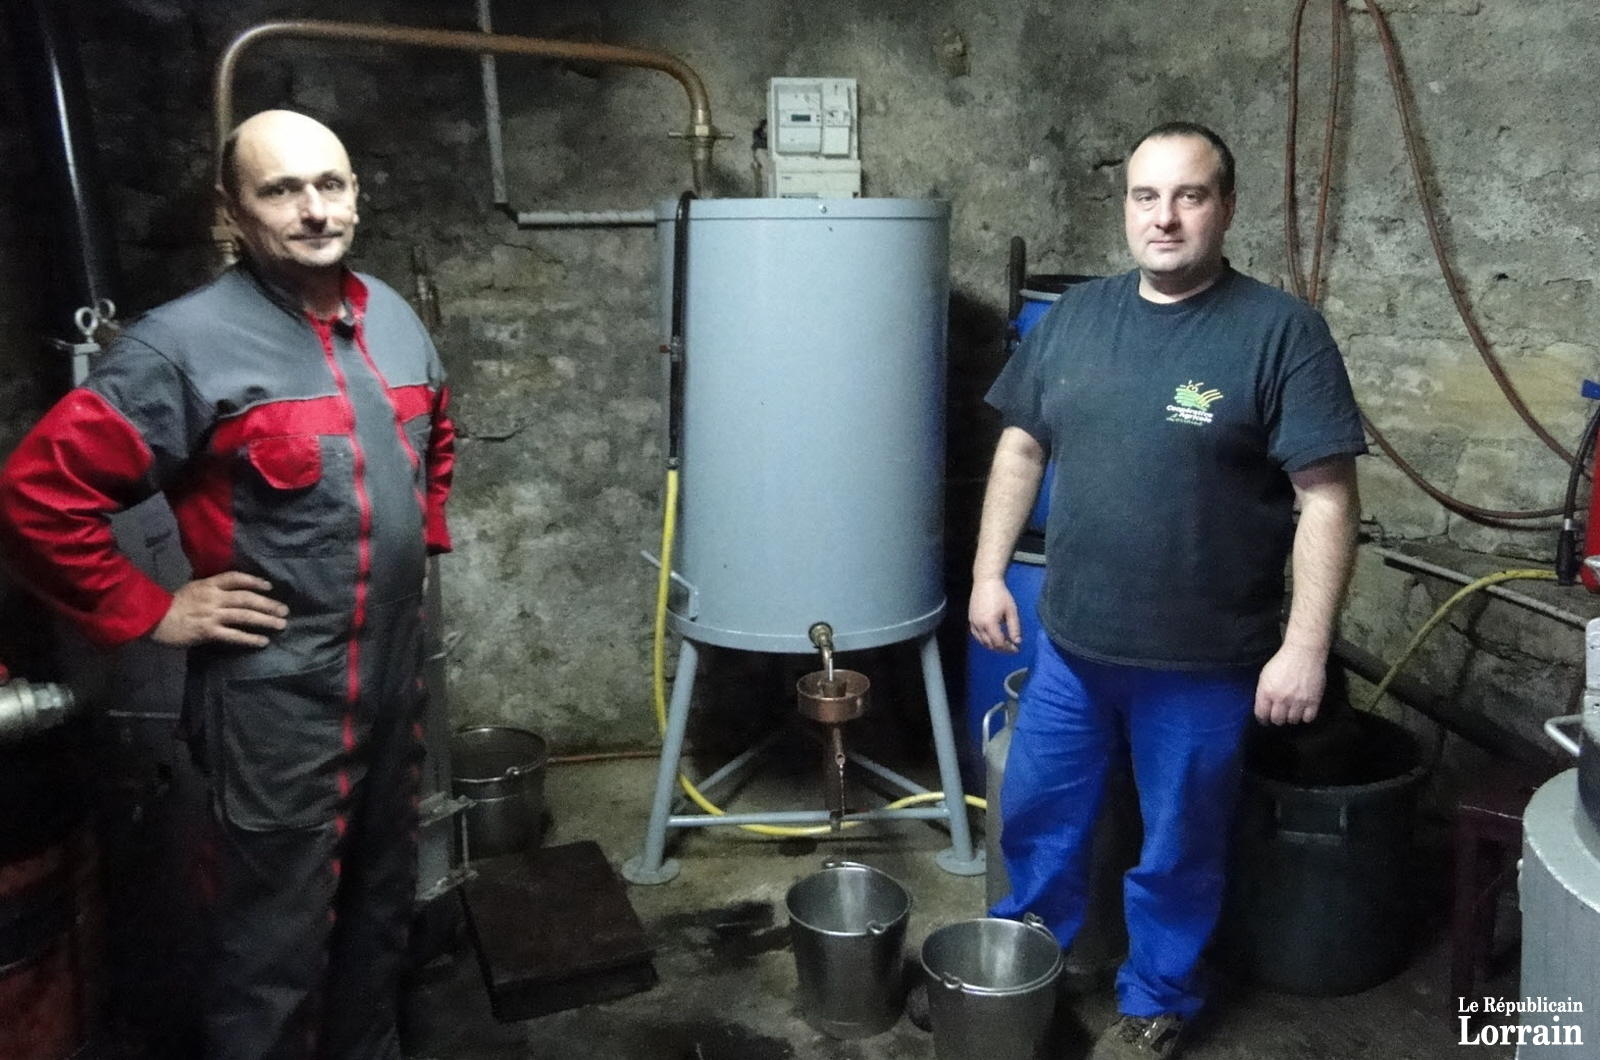 la-campagne-de-distillation-a-debute-a-murville-photo-rl-1542210100.jpg